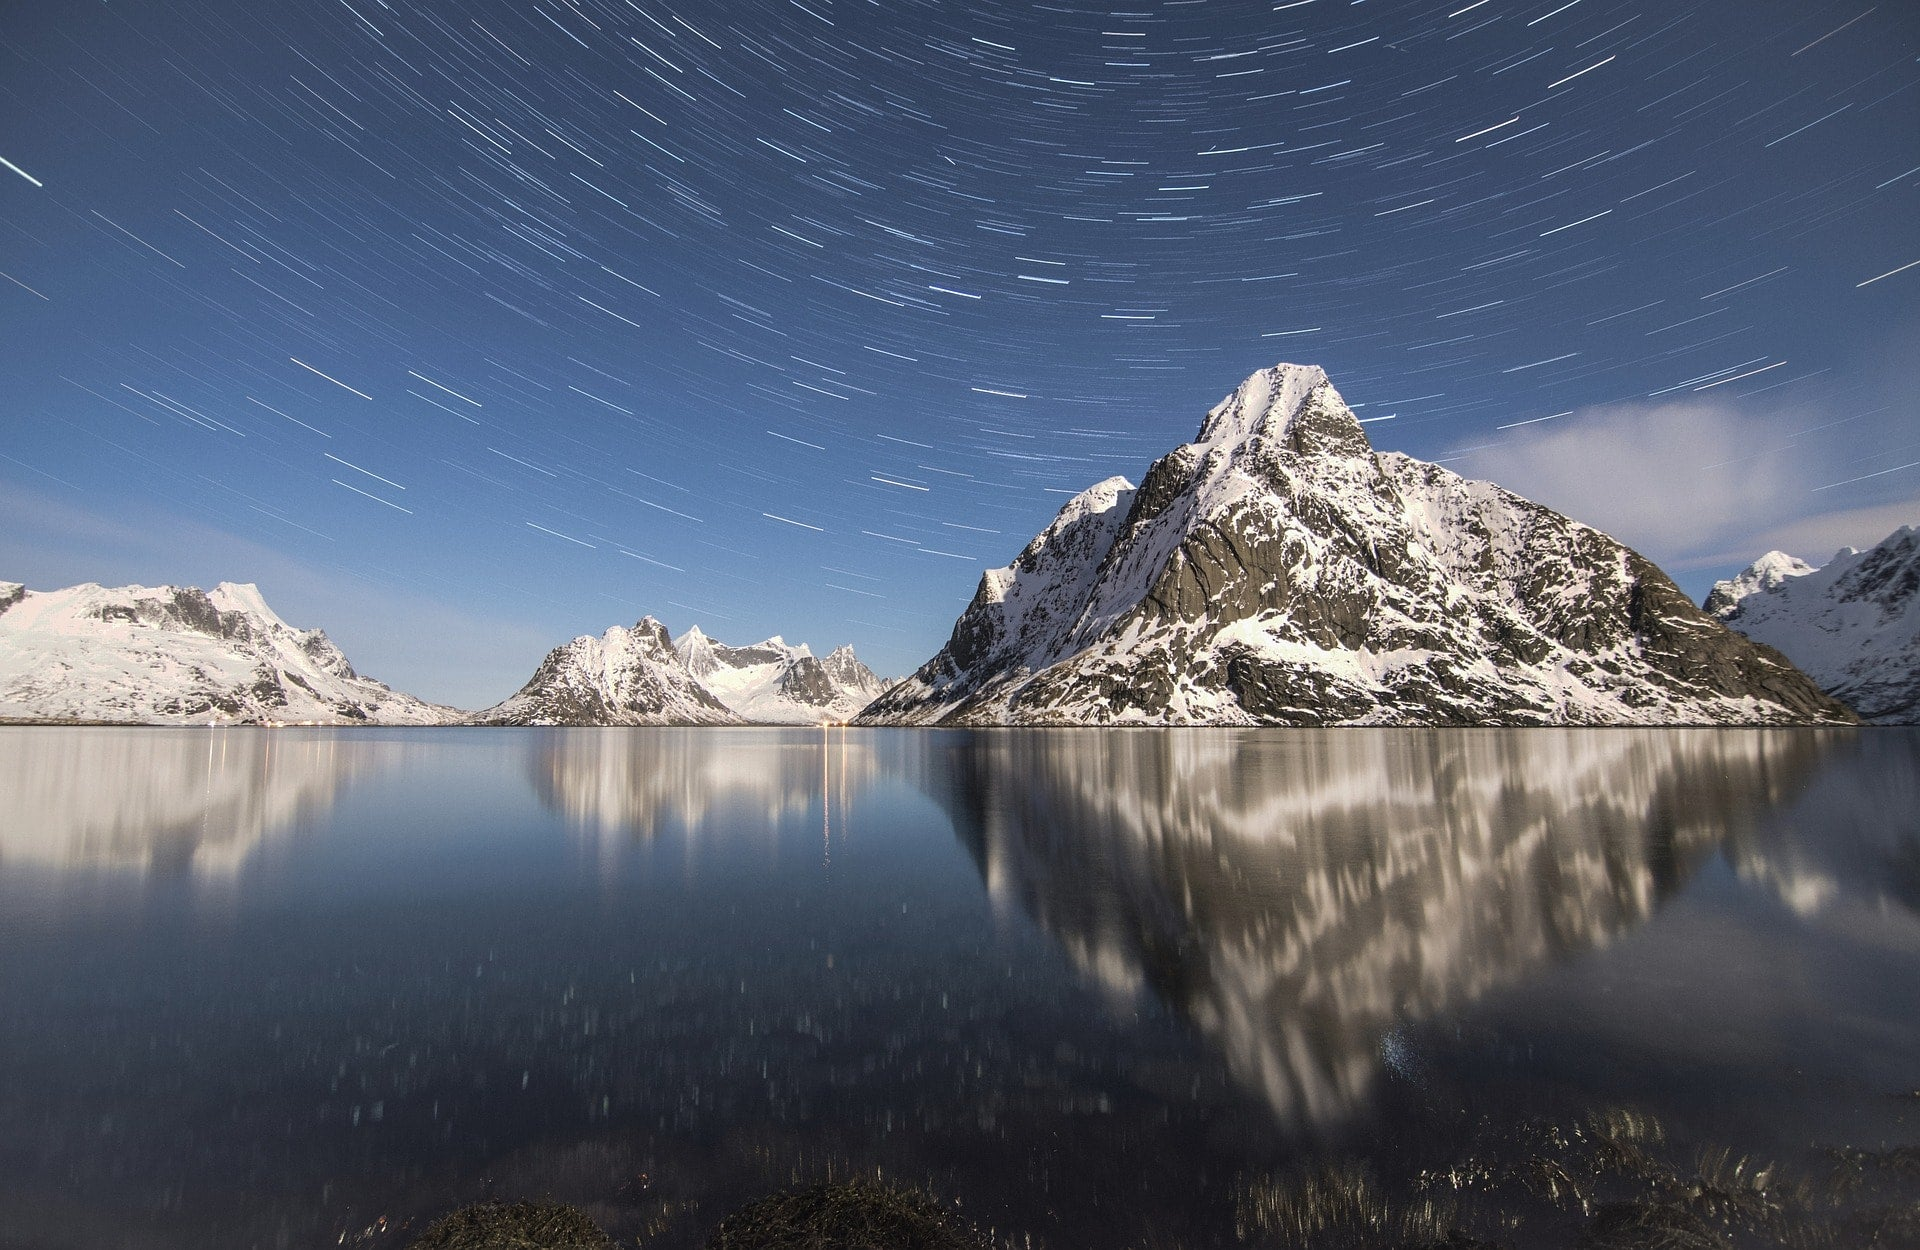 Star Trails Photography: Camera Equipment, Settings, and Exposure